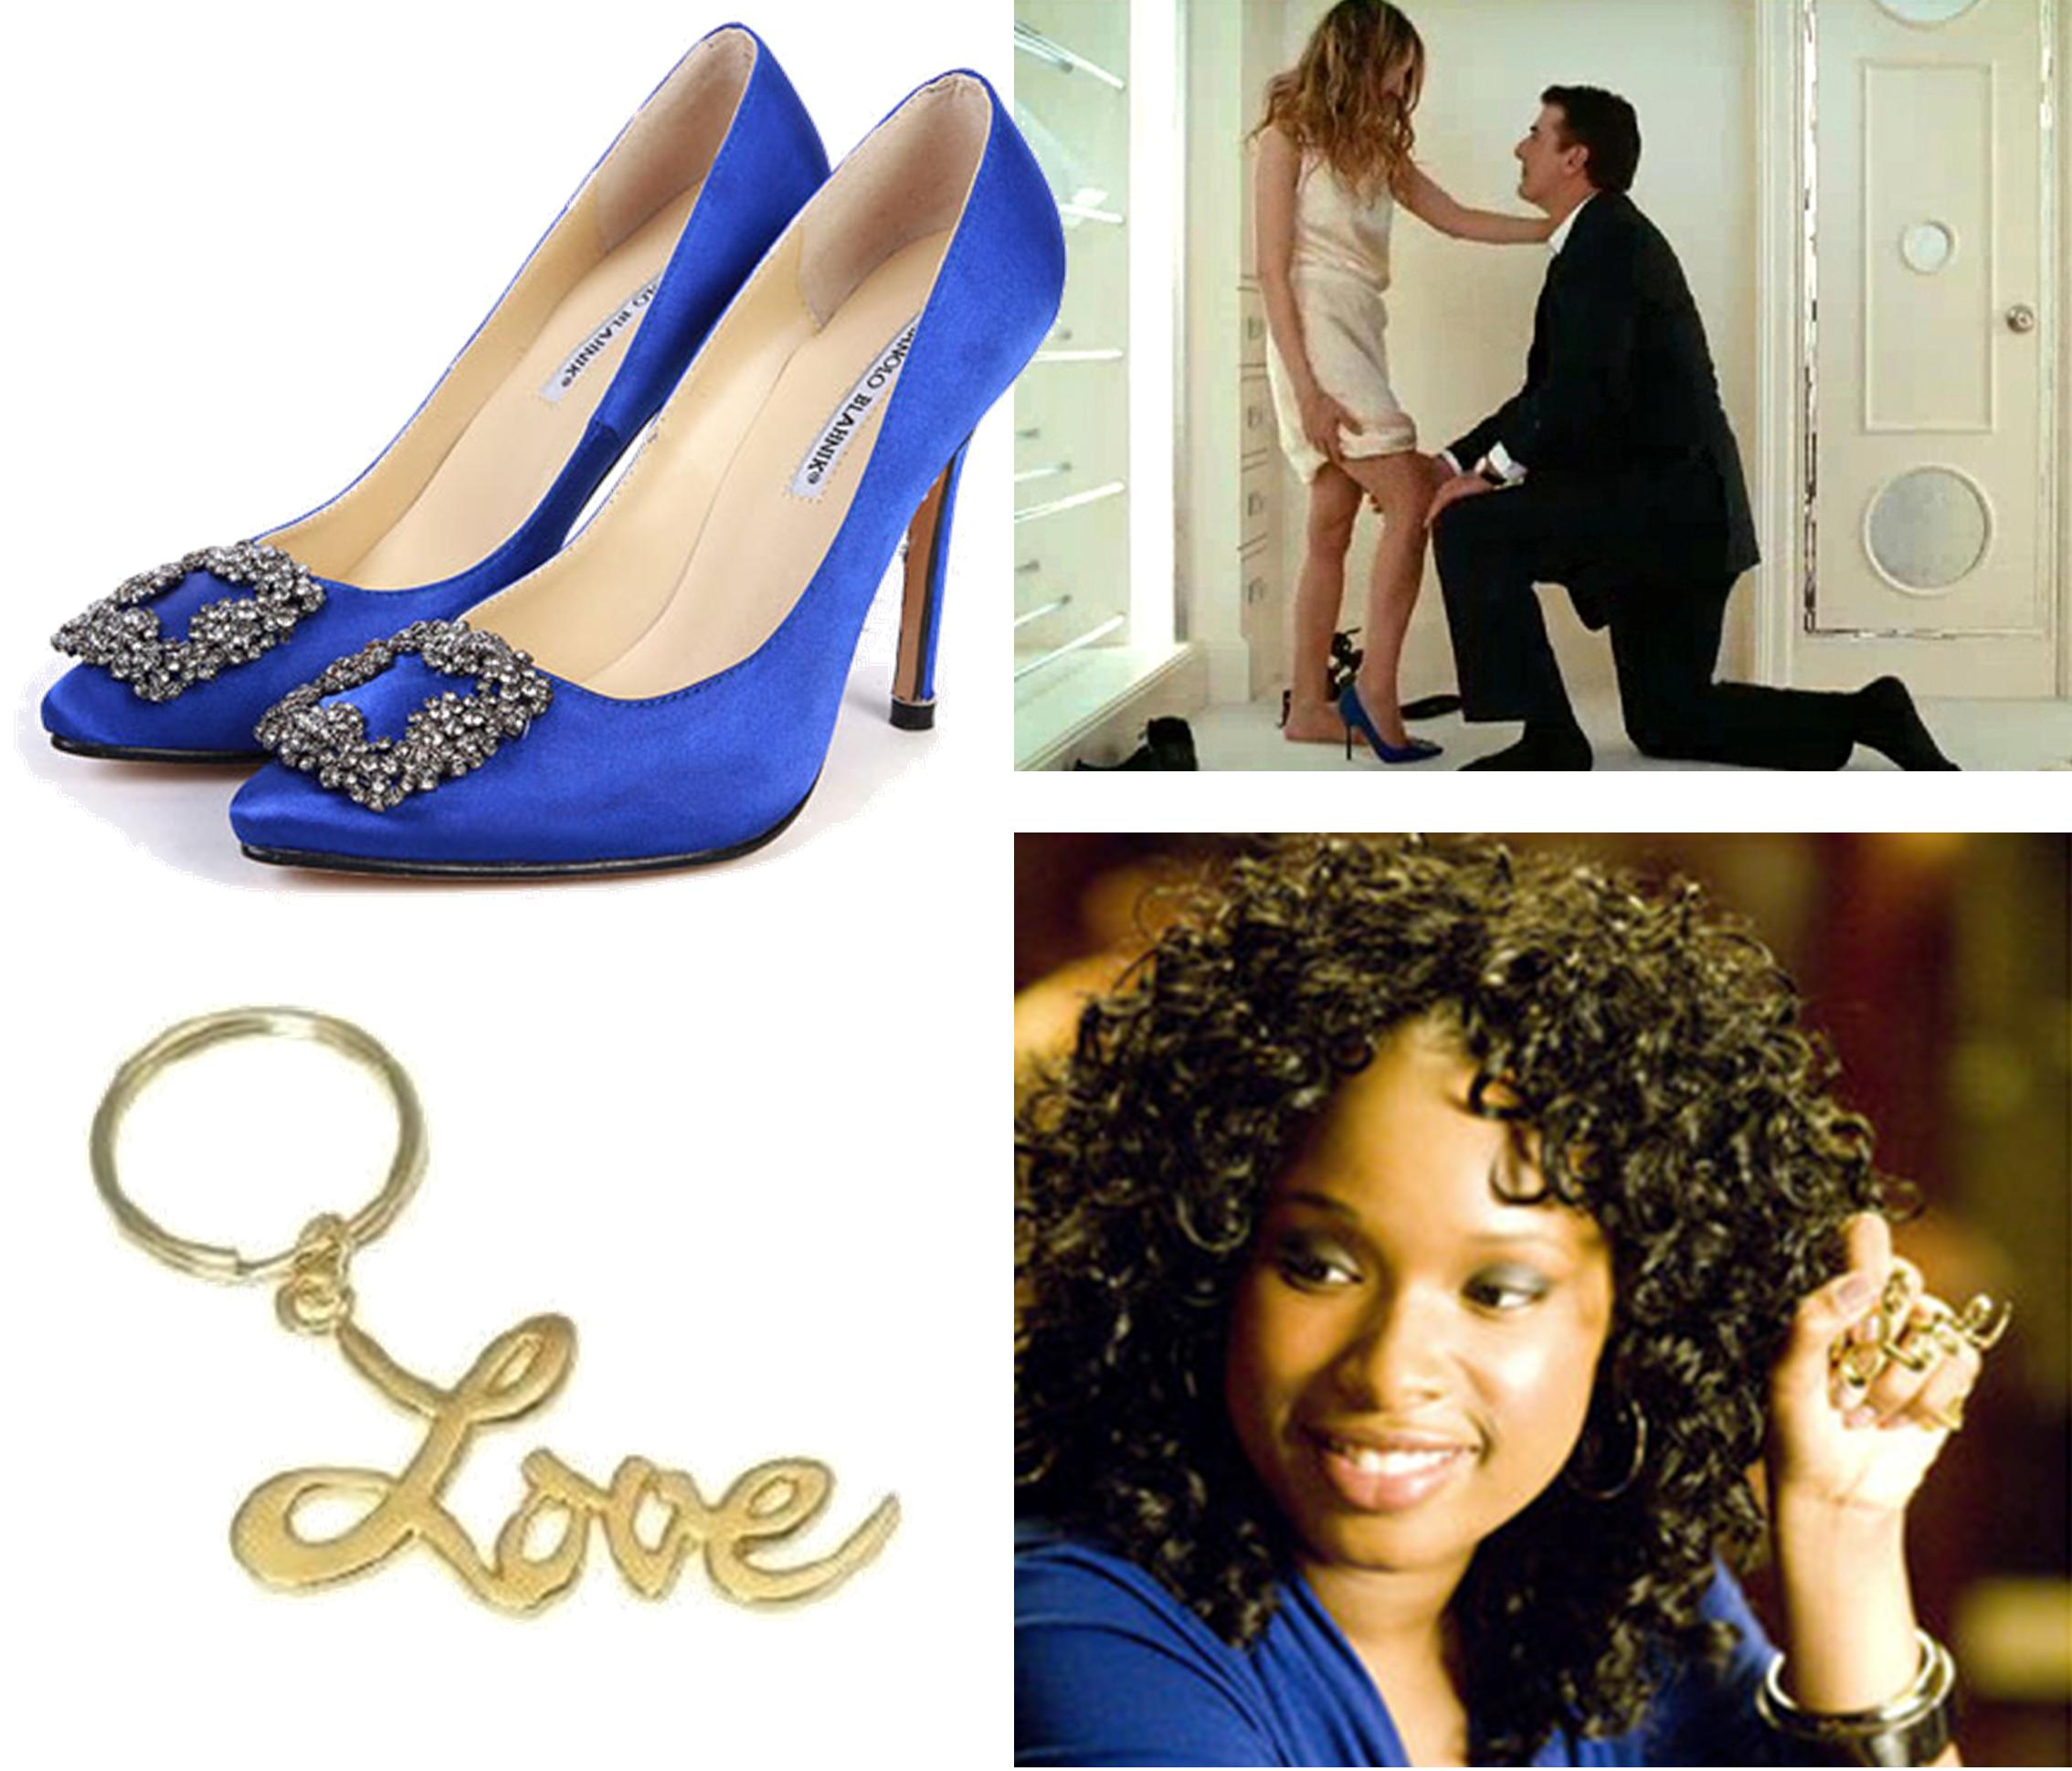 Manolo blahnik sex and the city movie shoes